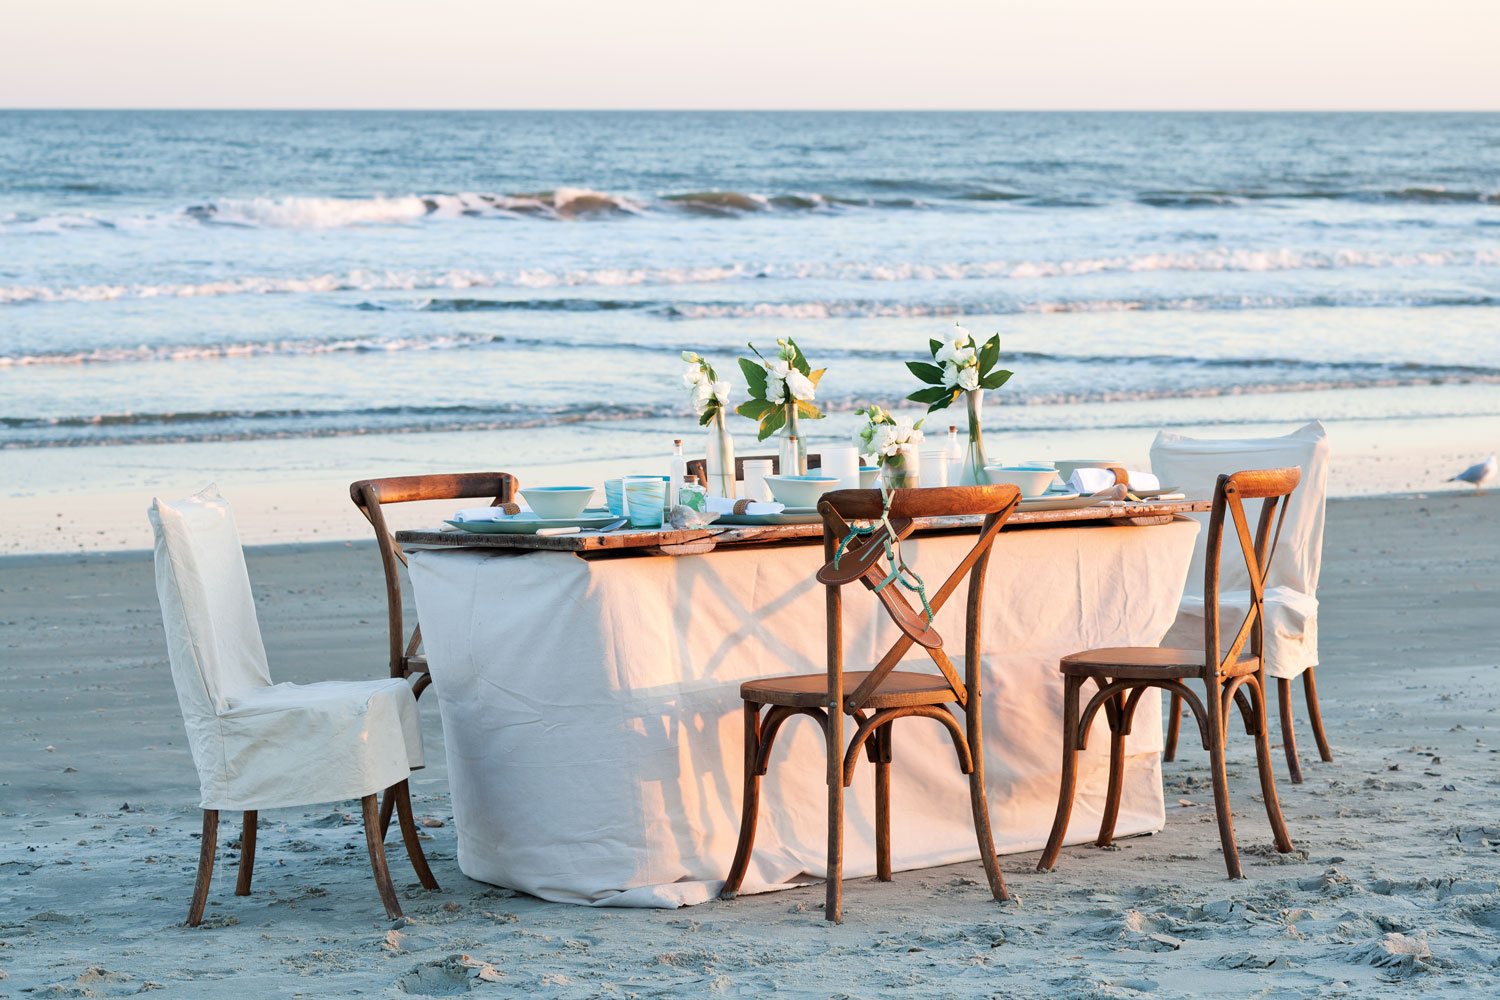 A picture of a table setting inspired by the sea on the beach